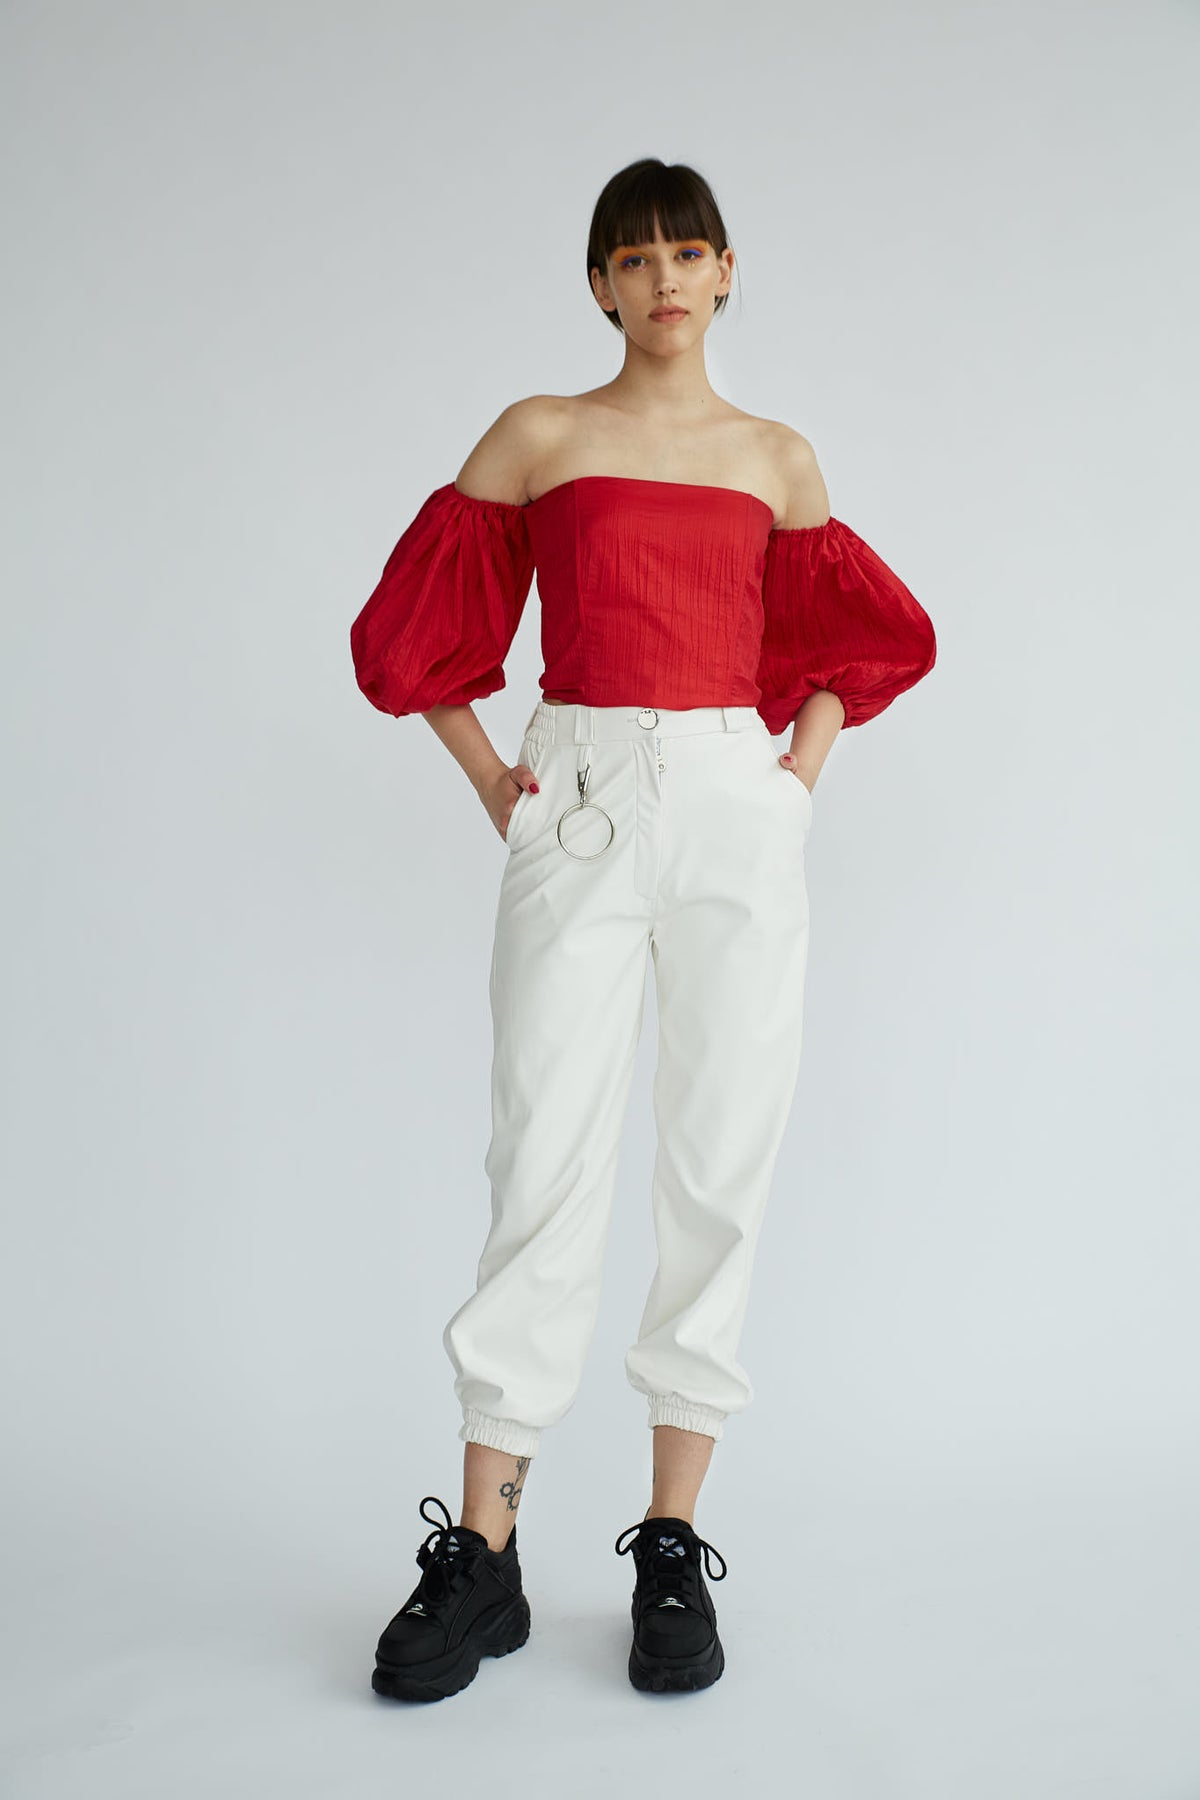 FRIDA | Red volume sleeve top